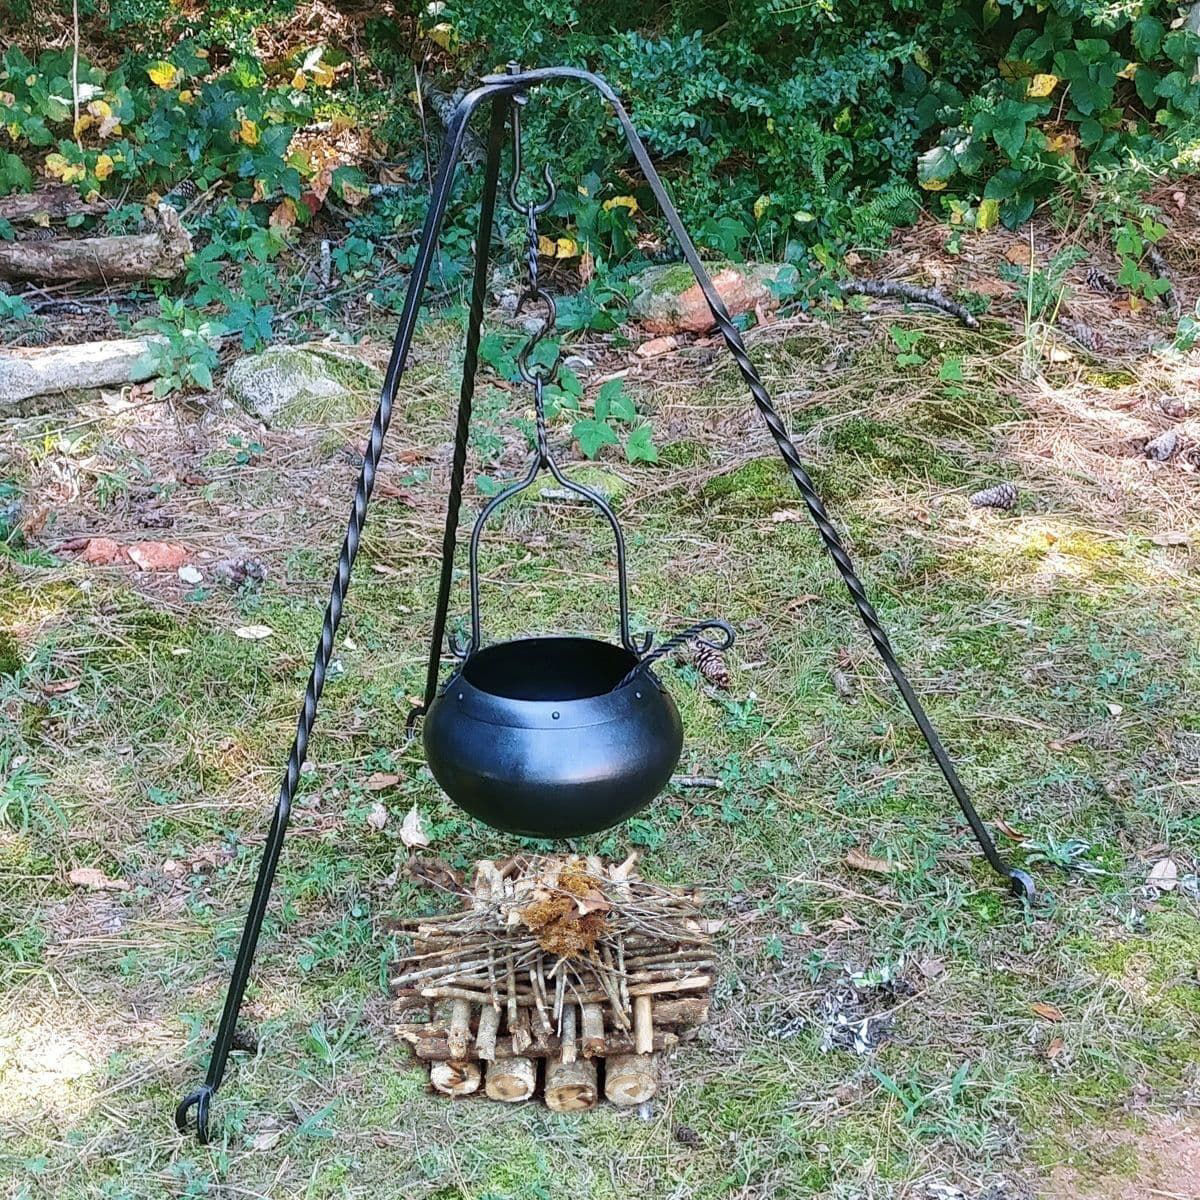 Camp Gear set up with Medieval Forged Iron Utensils